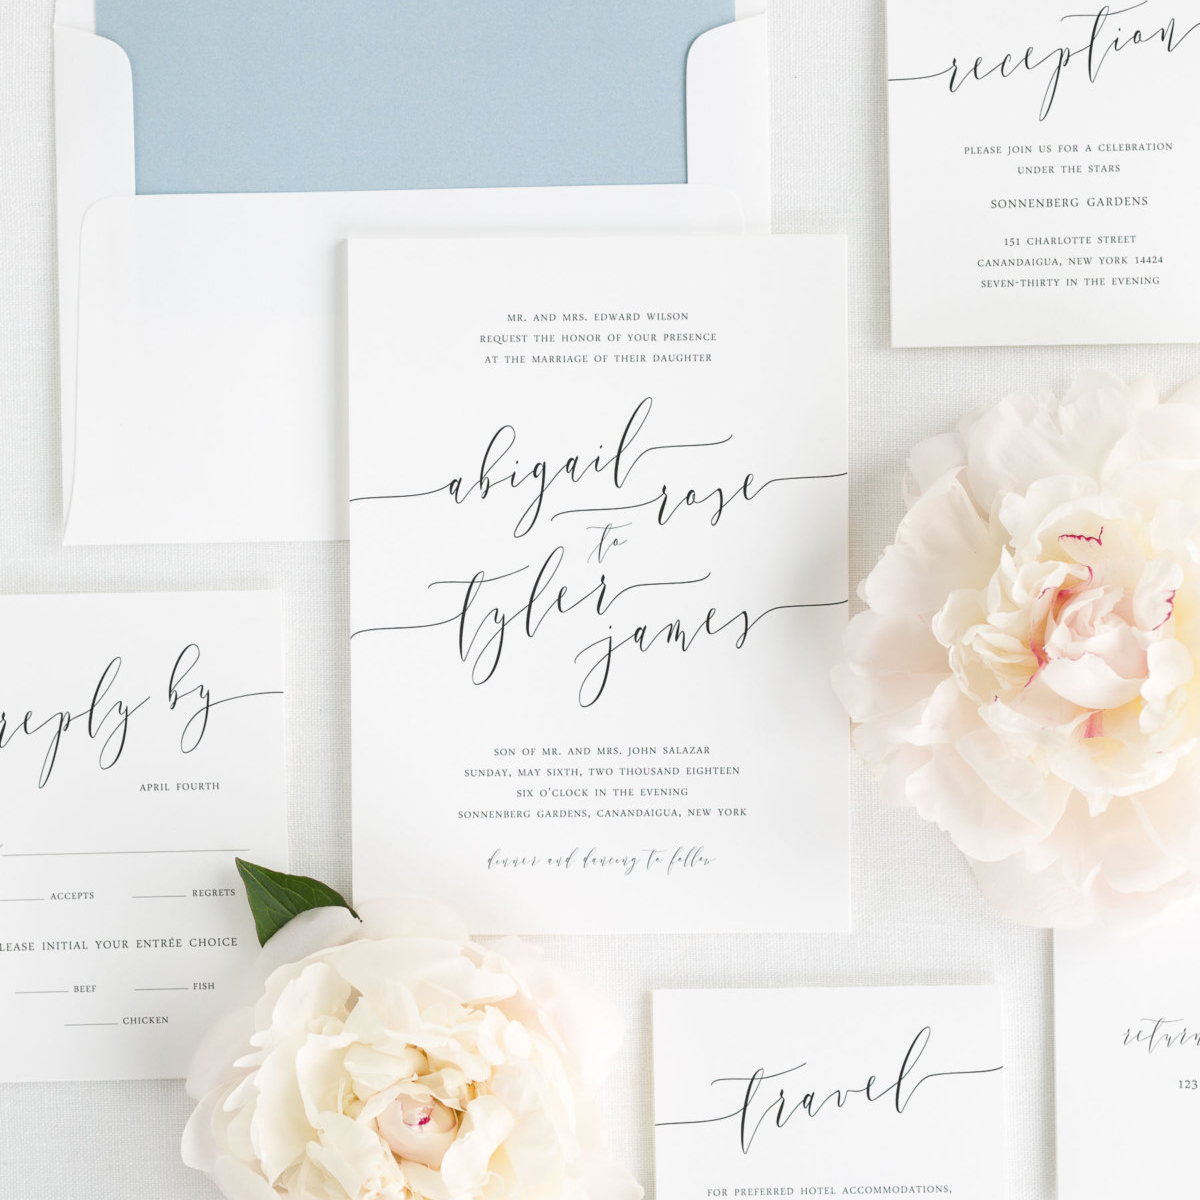 When Do I Send Out Wedding Invitations: Our Top 20 Swoon-Worthy Wedding Invitations From Etsy